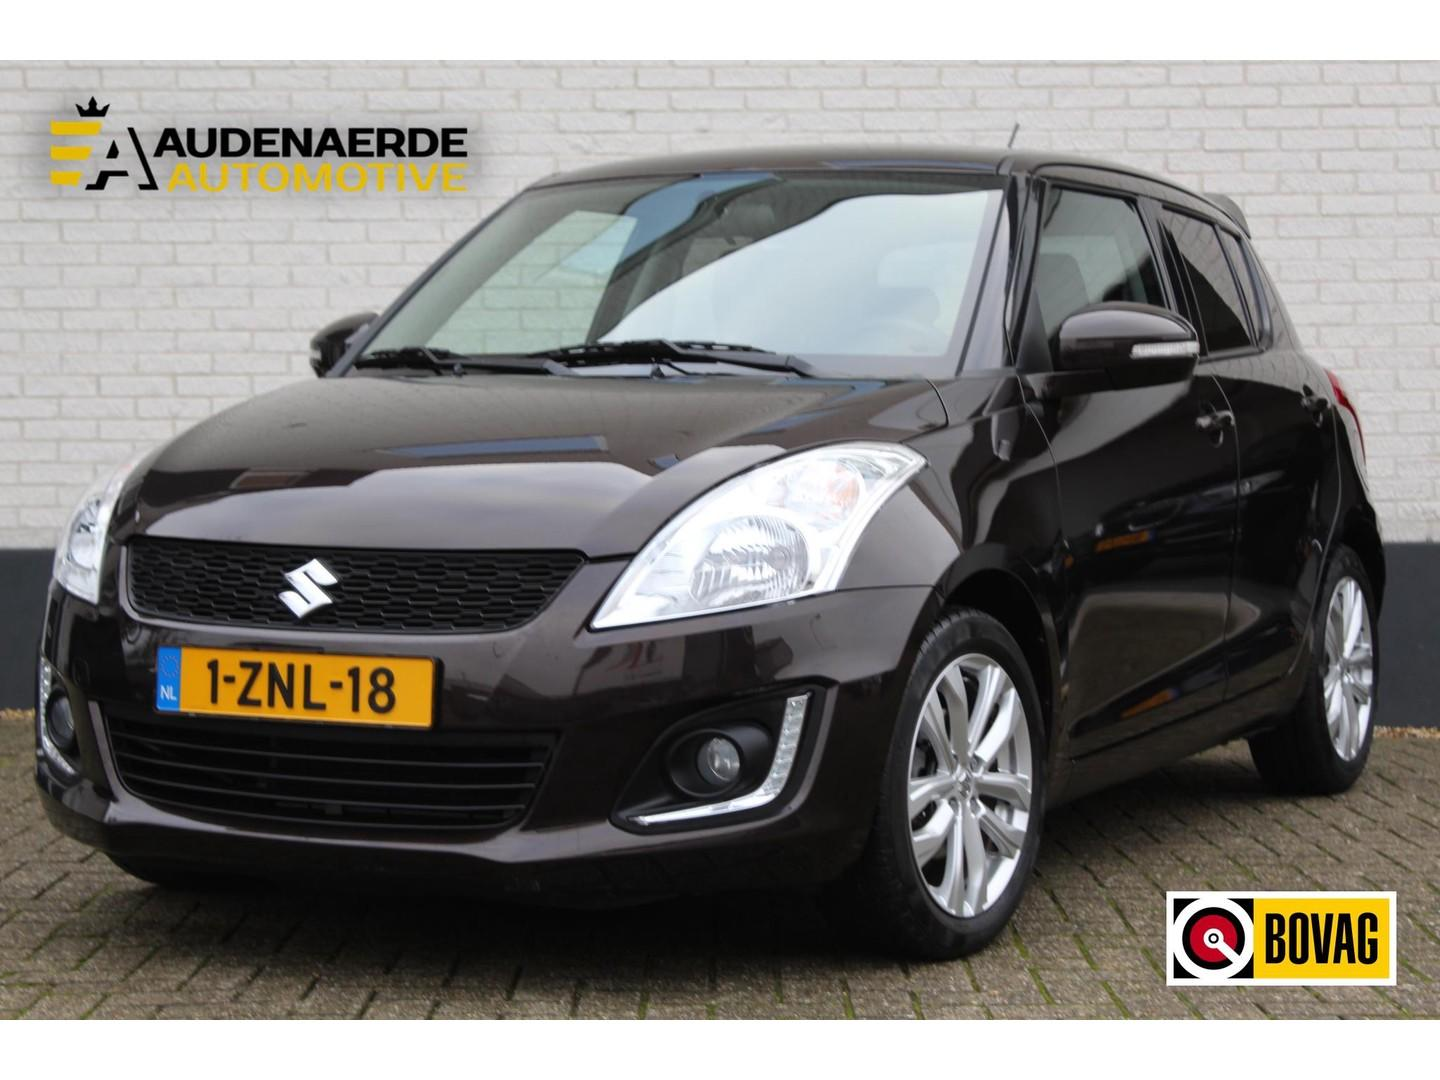 Suzuki Swift 1.2 bandit